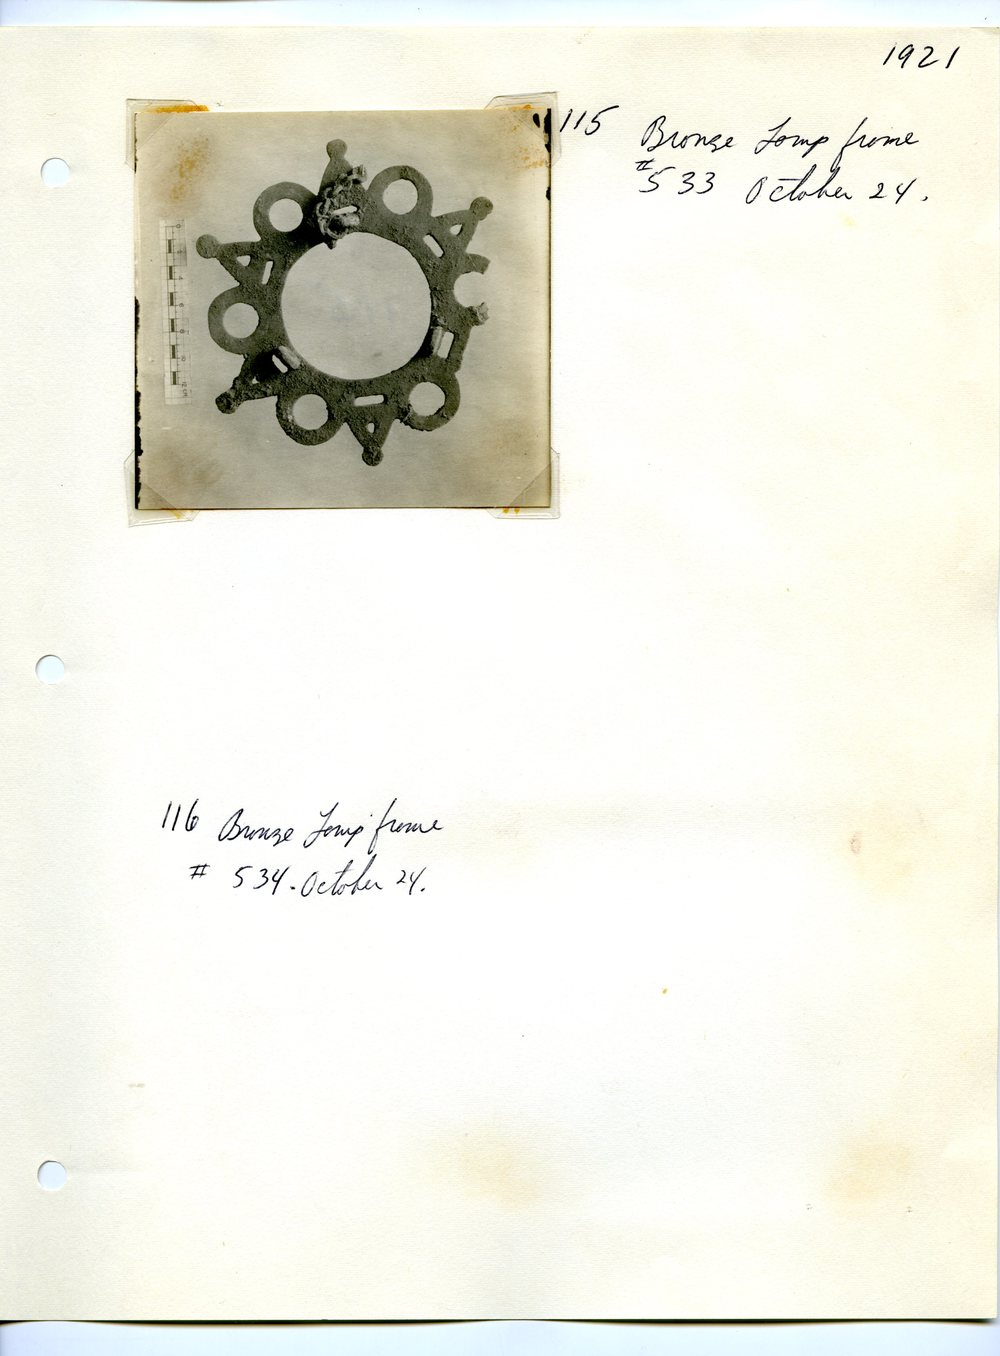 Excavation Notes and Photograph of a Polycandelon